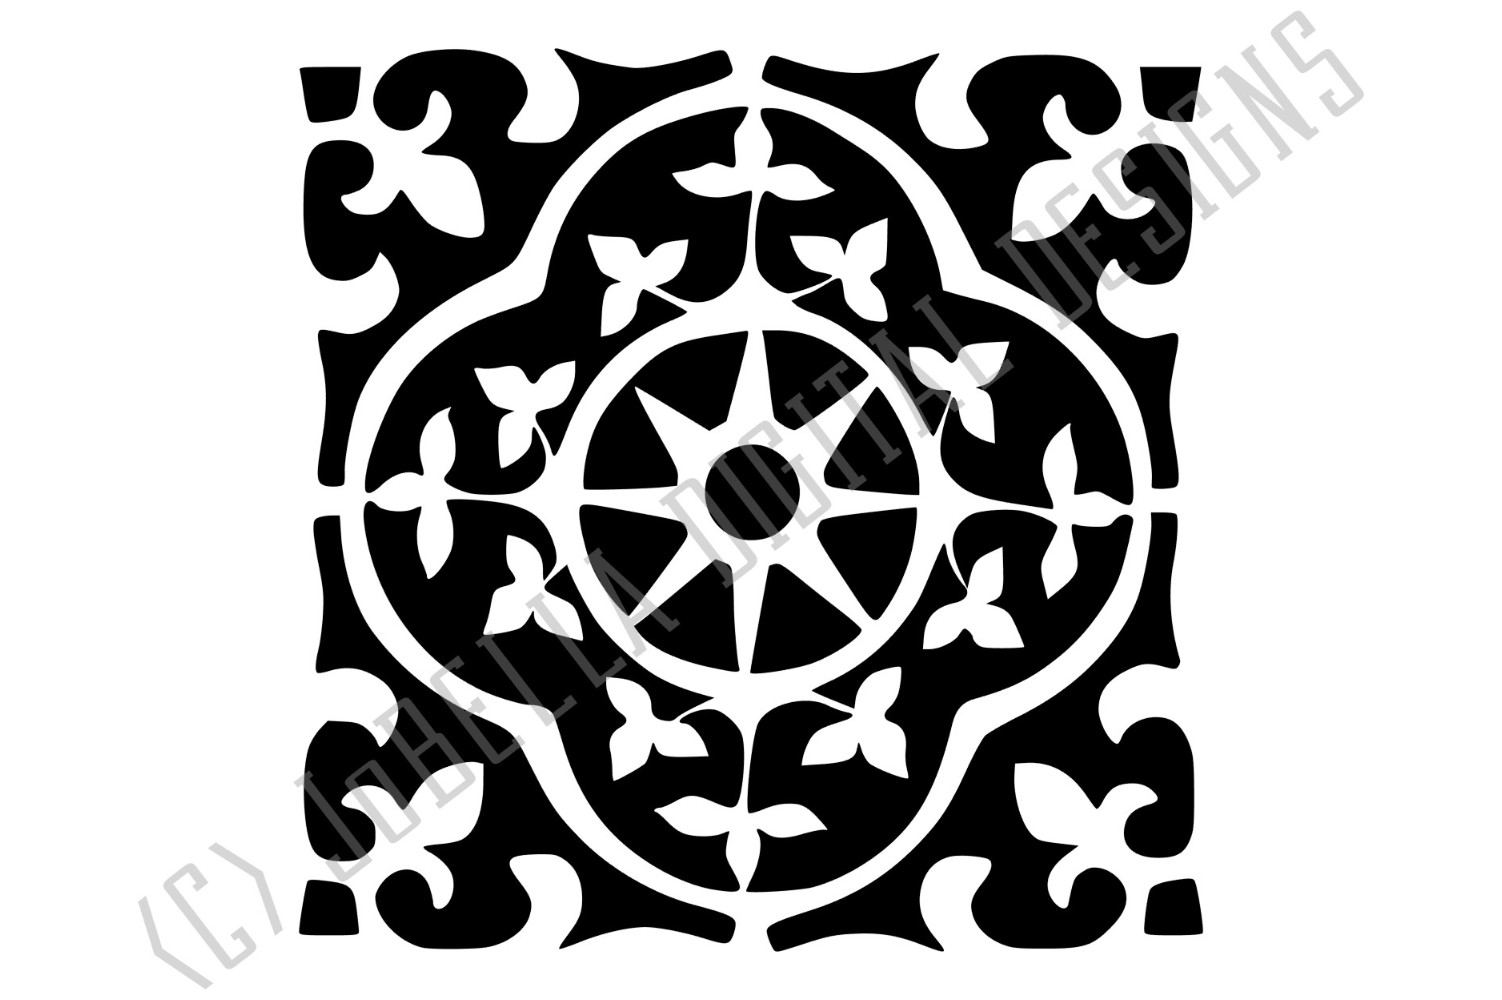 Spanish Tile 3 SVG, Stencil Template and Printable example image 2